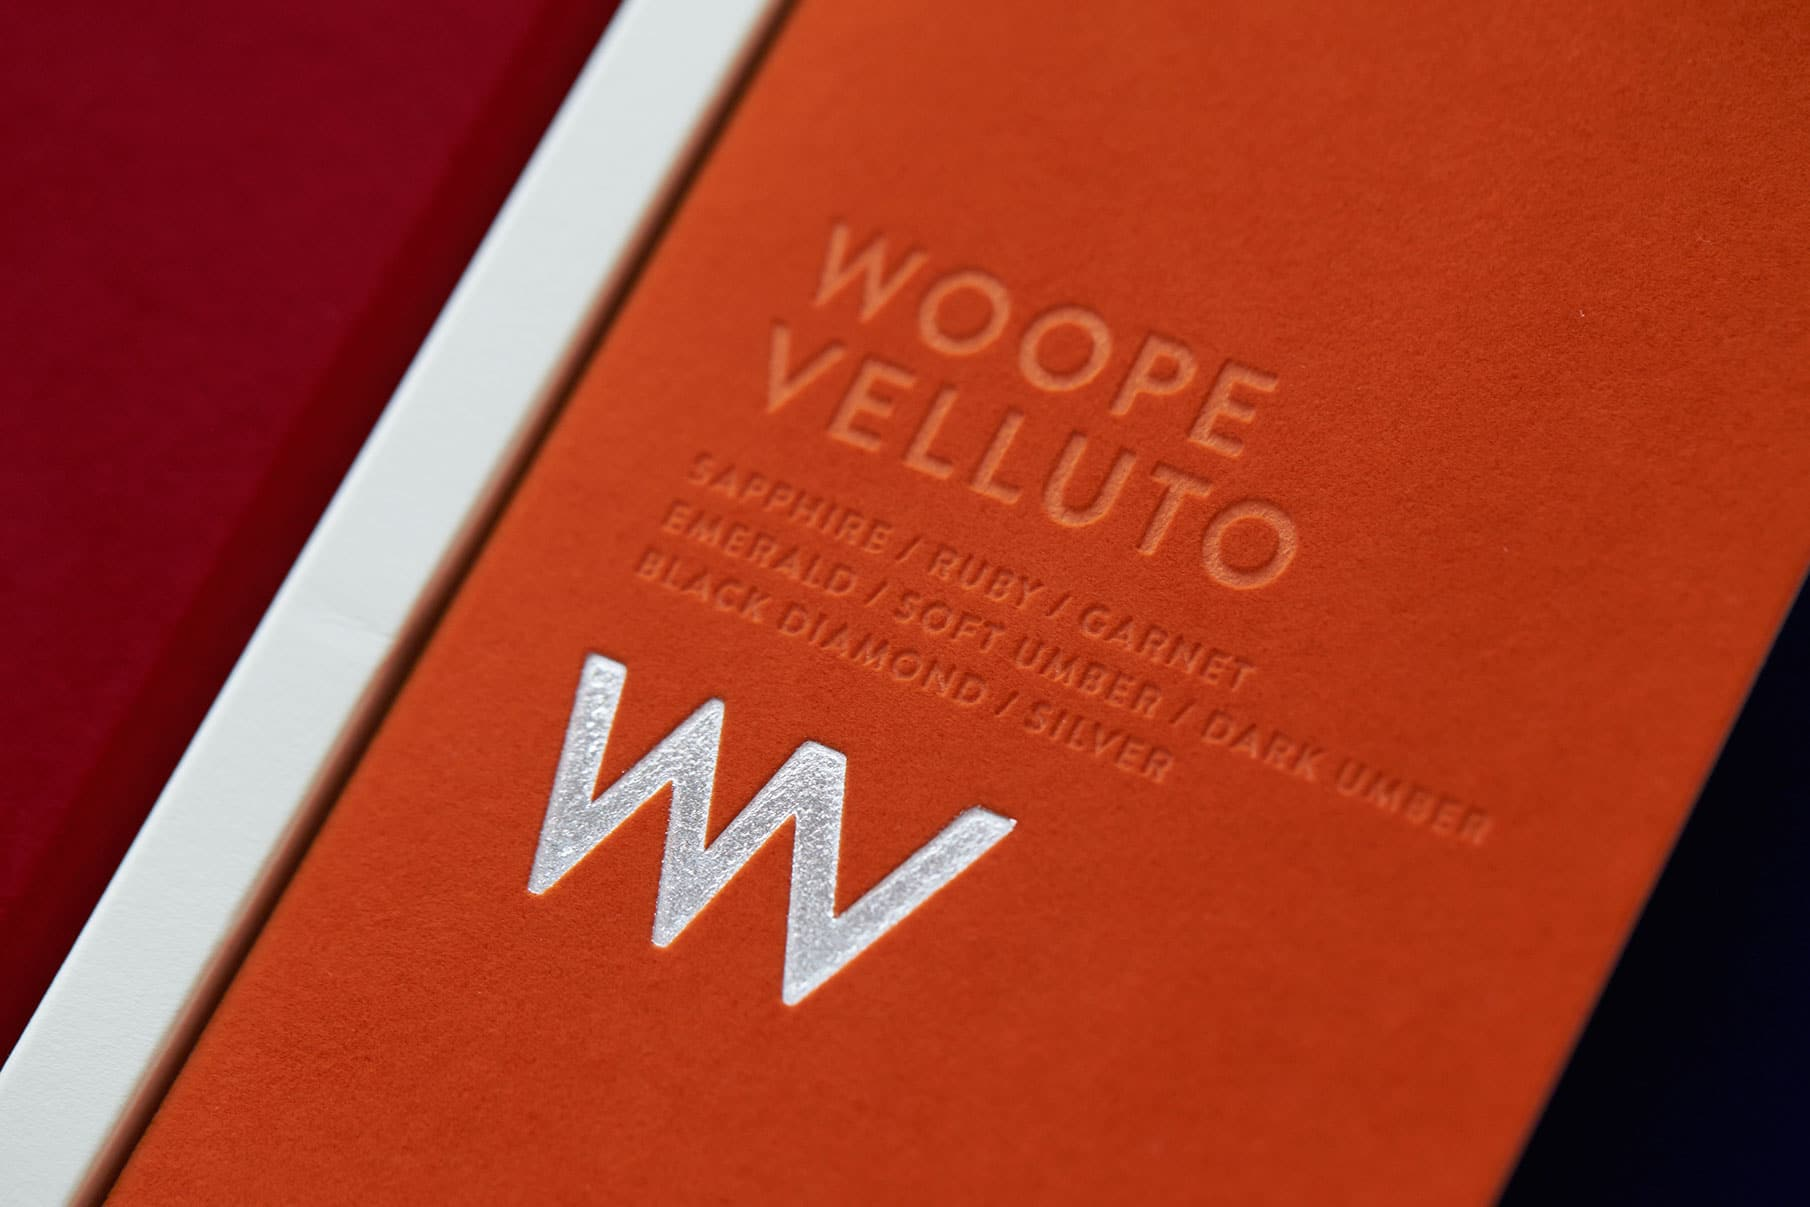 Woope Velluto - Promotion Box 5